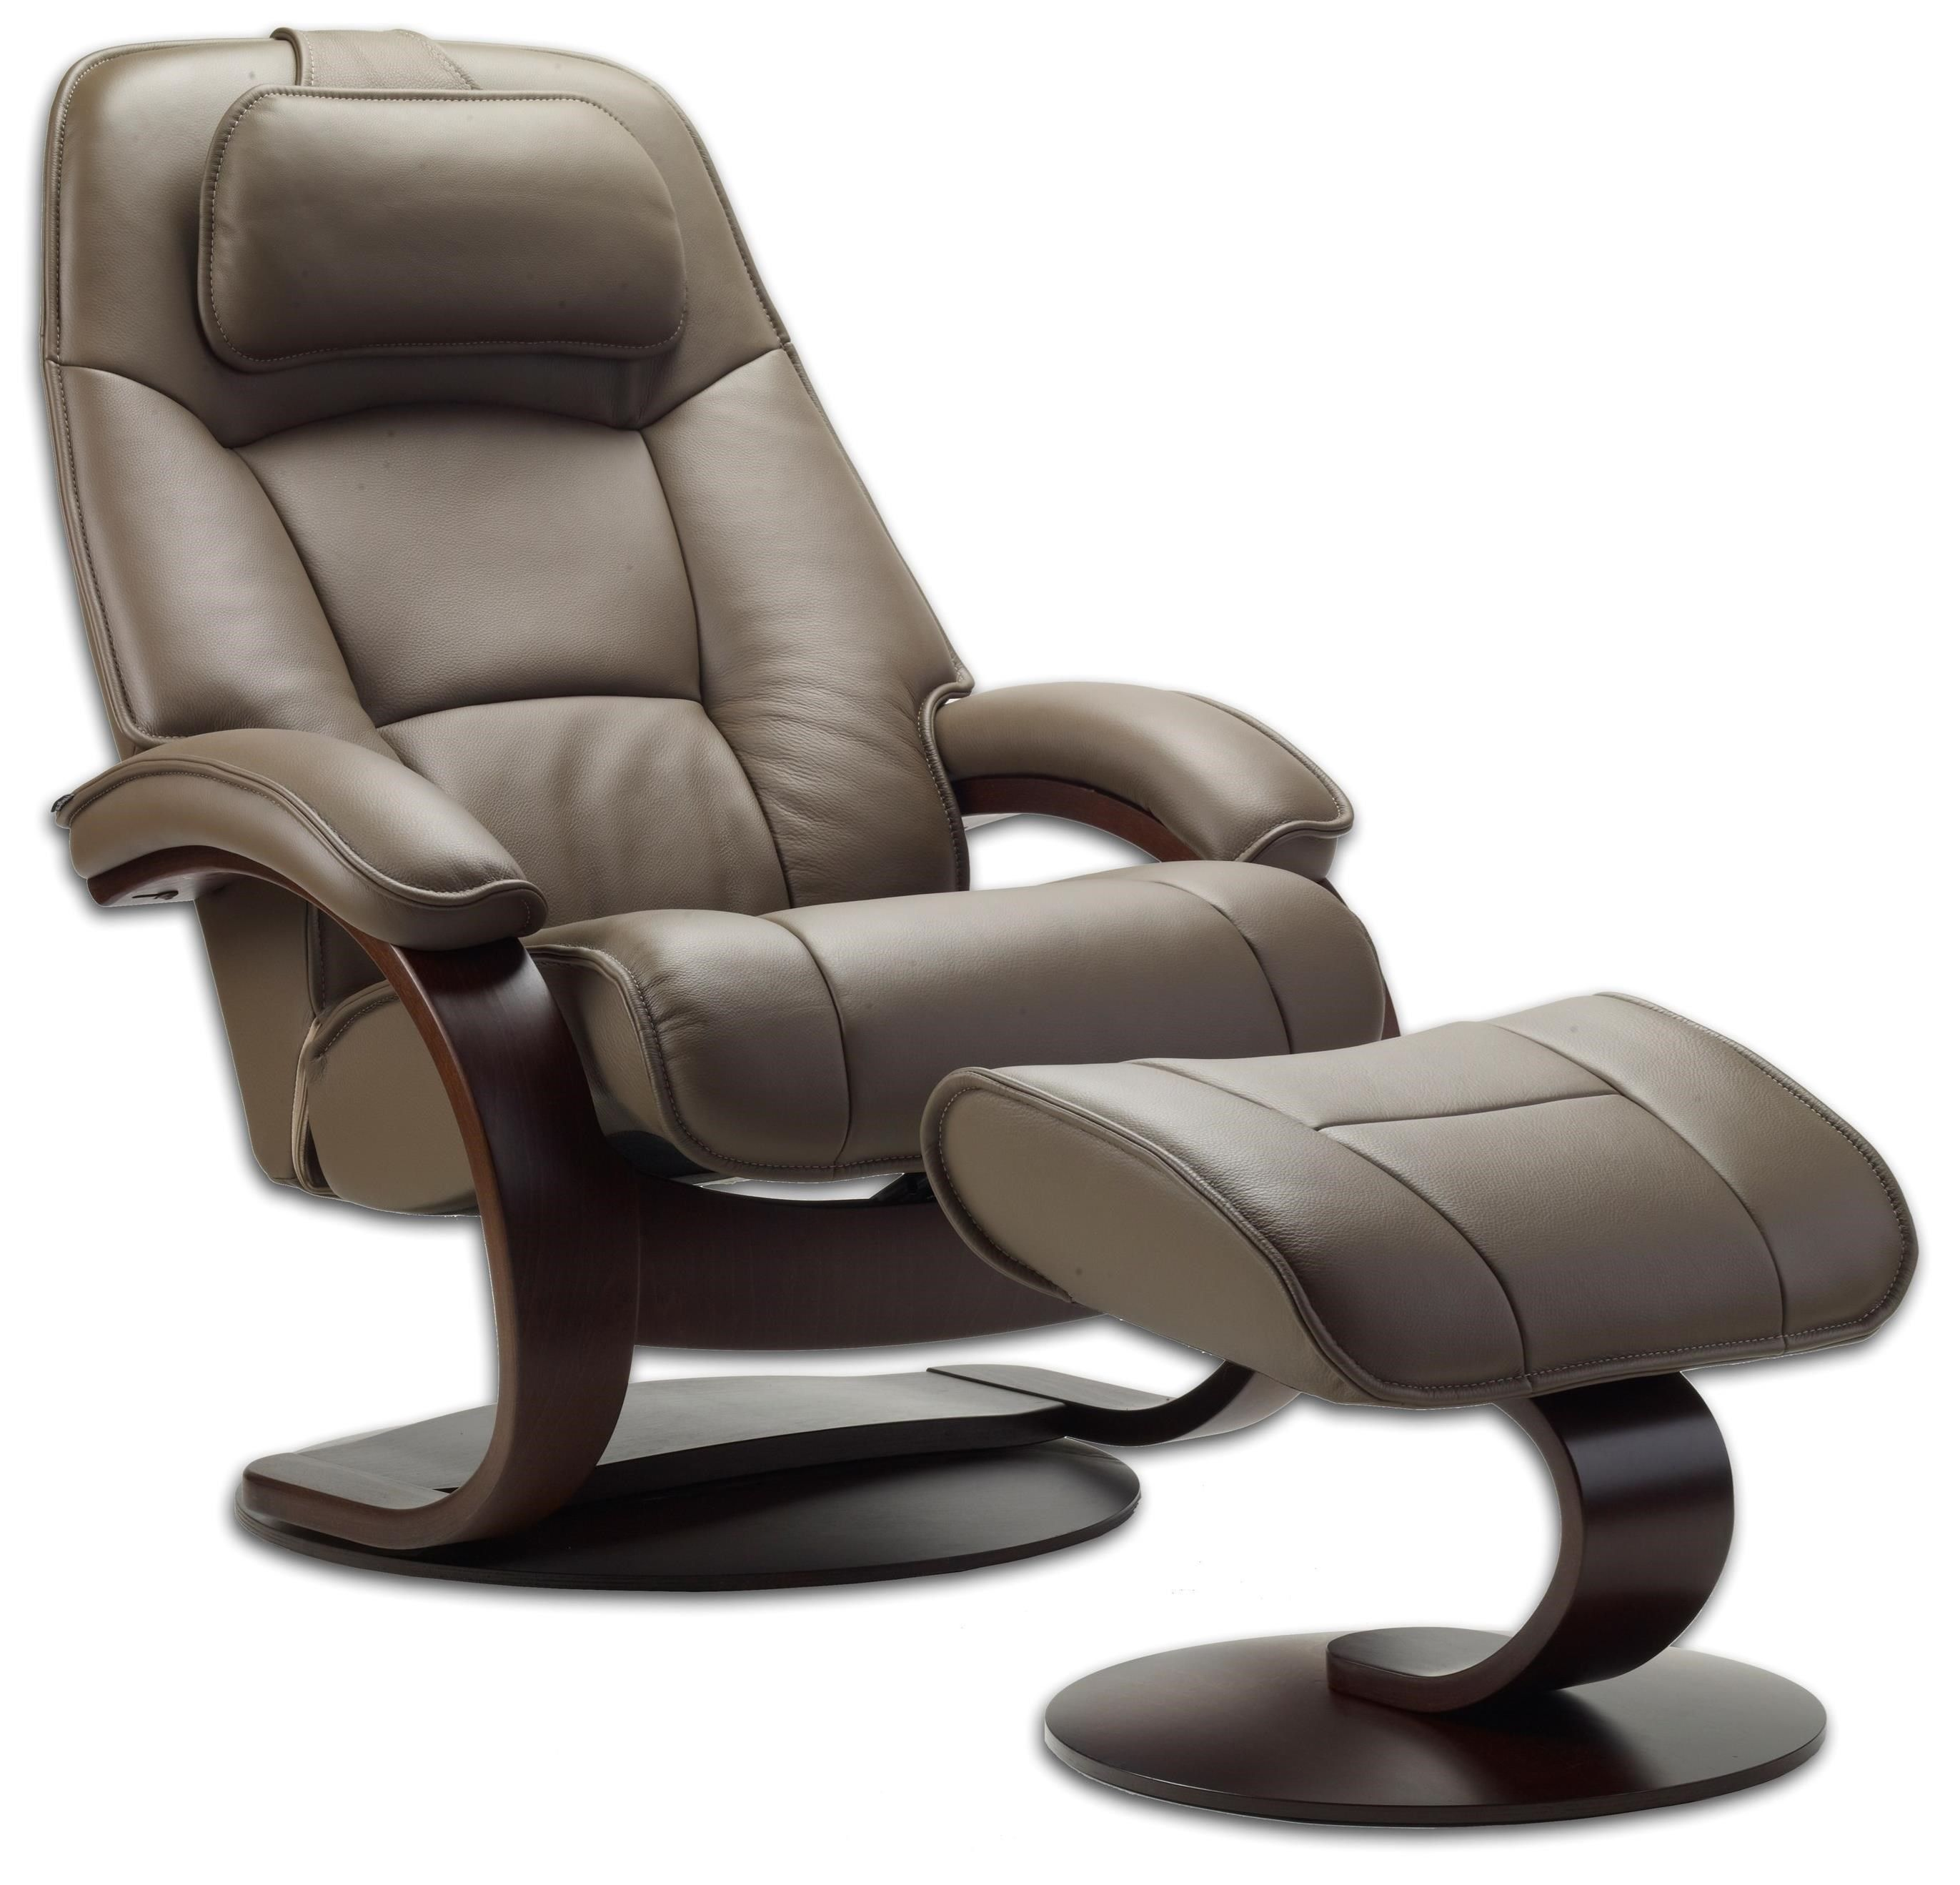 Eve Leather Recliner with Ottoman Furniture Macy's